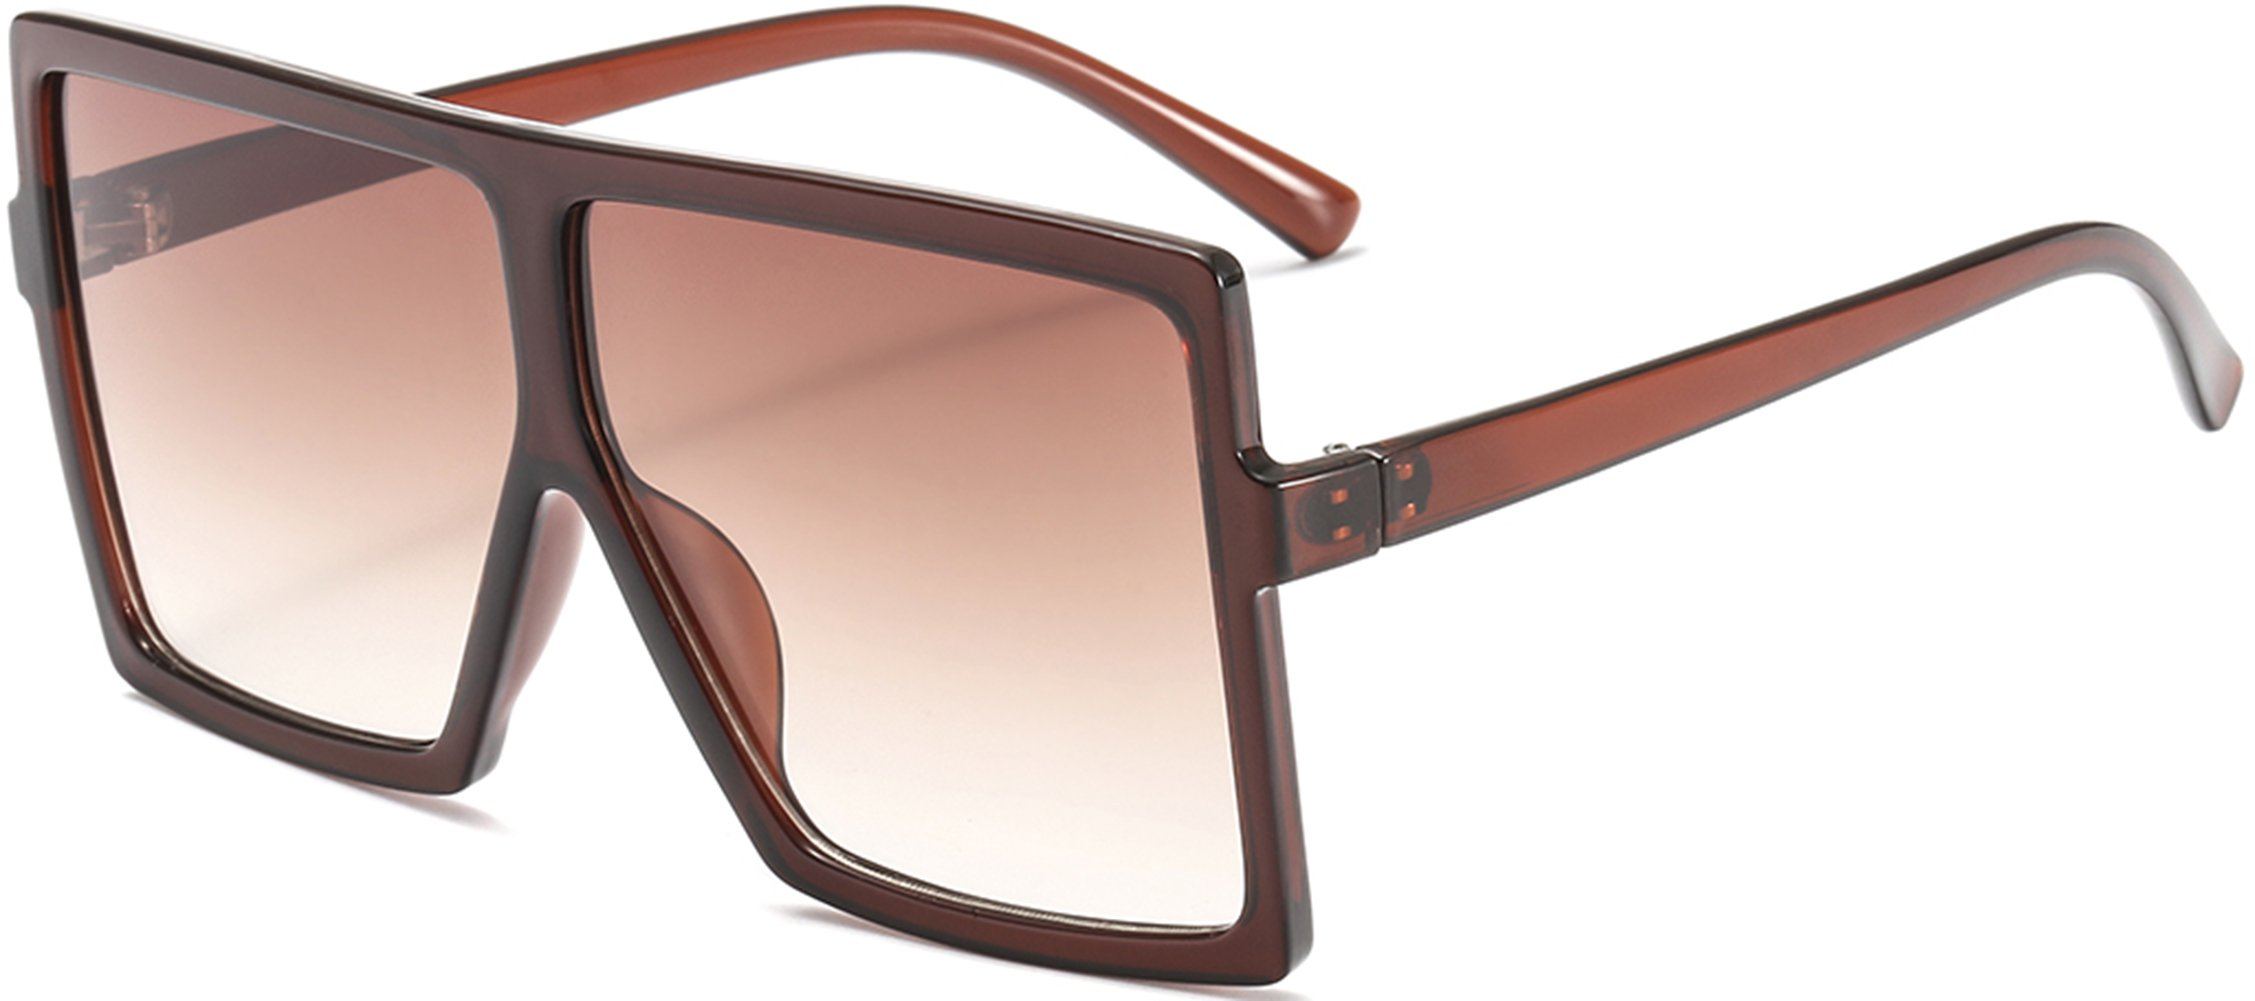 MAOLEN Oversized Square Frame Sunglasses for Womens Polarized Flat Top Shades Sunglasses (brown-brown)